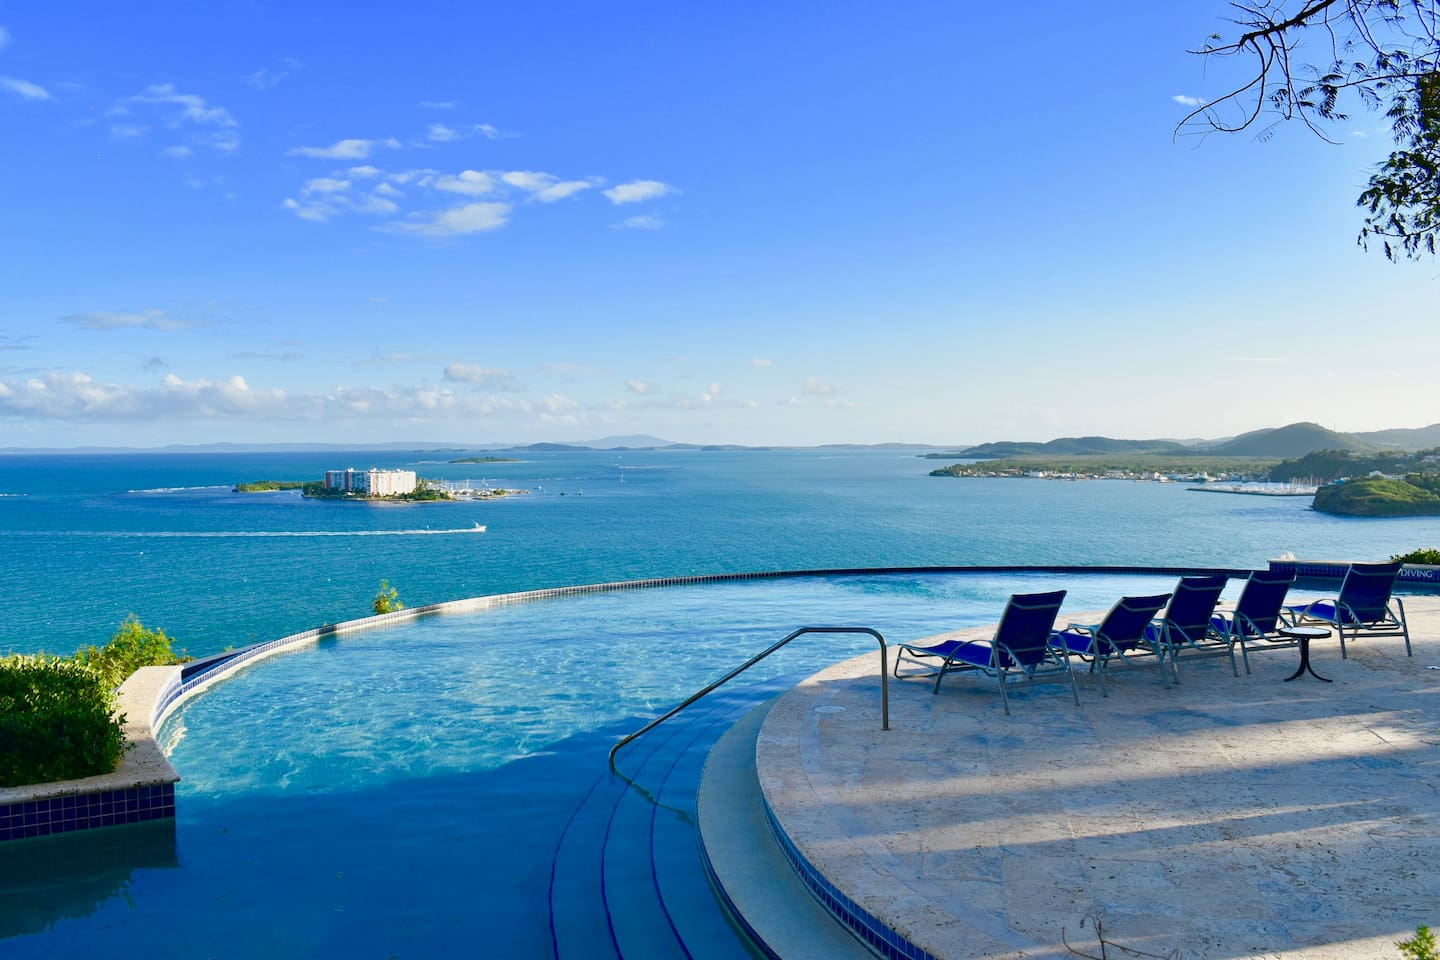 Infinity Pool stunning views of the ocean and near islands.